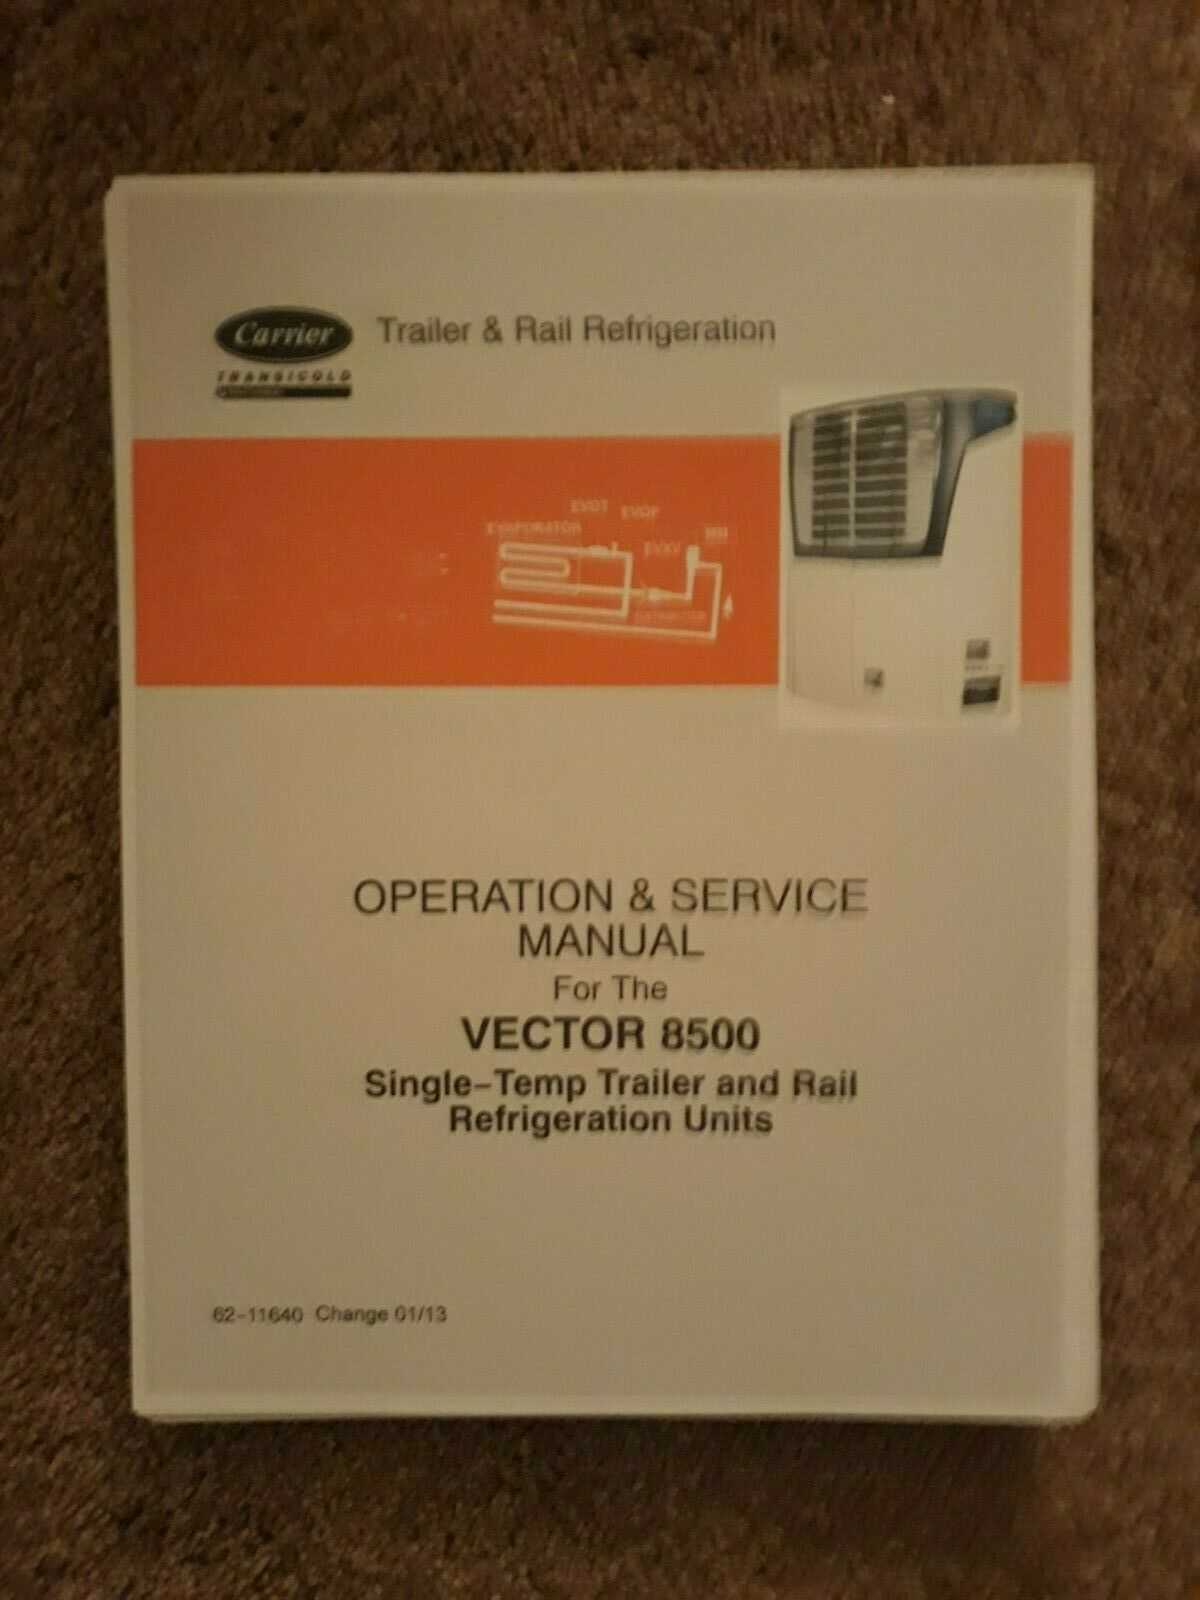 Carrier Transicold Service Repair Manual Vector 8500 Manual Guide